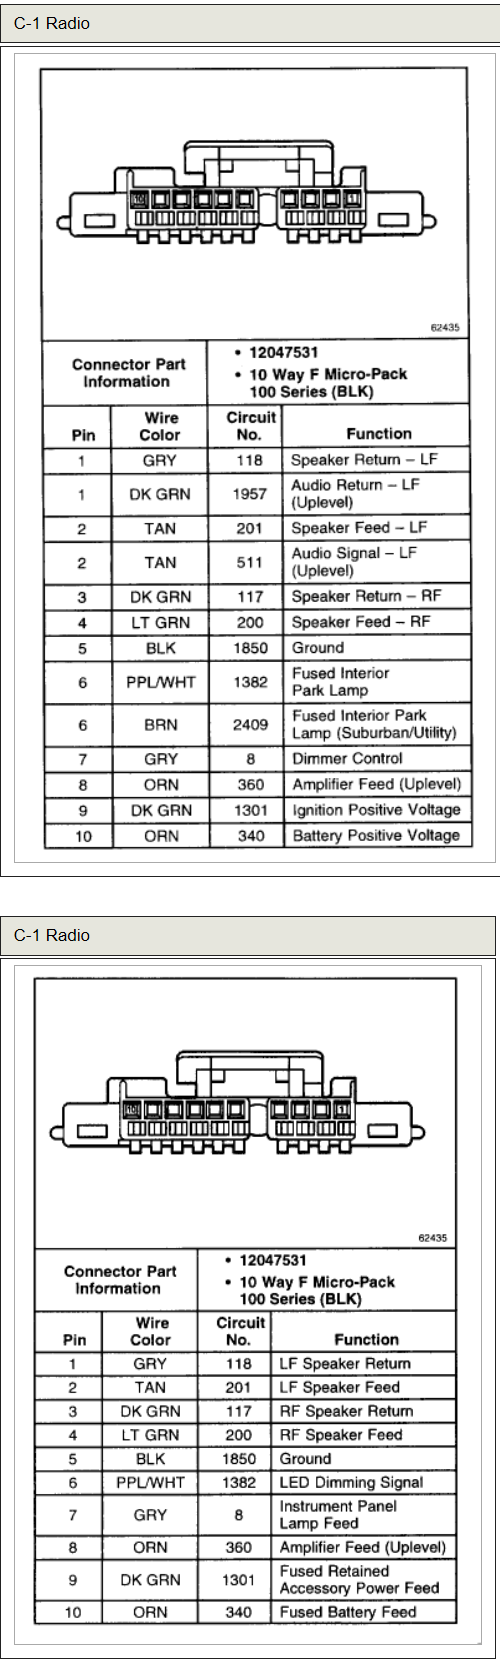 Chevrolet Car Radio Stereo Audio Wiring Diagram Autoradio Connector Panasonic Harness Wire Installation Schematic Schema Esquema De Conexiones Anschlusskammern Konektor